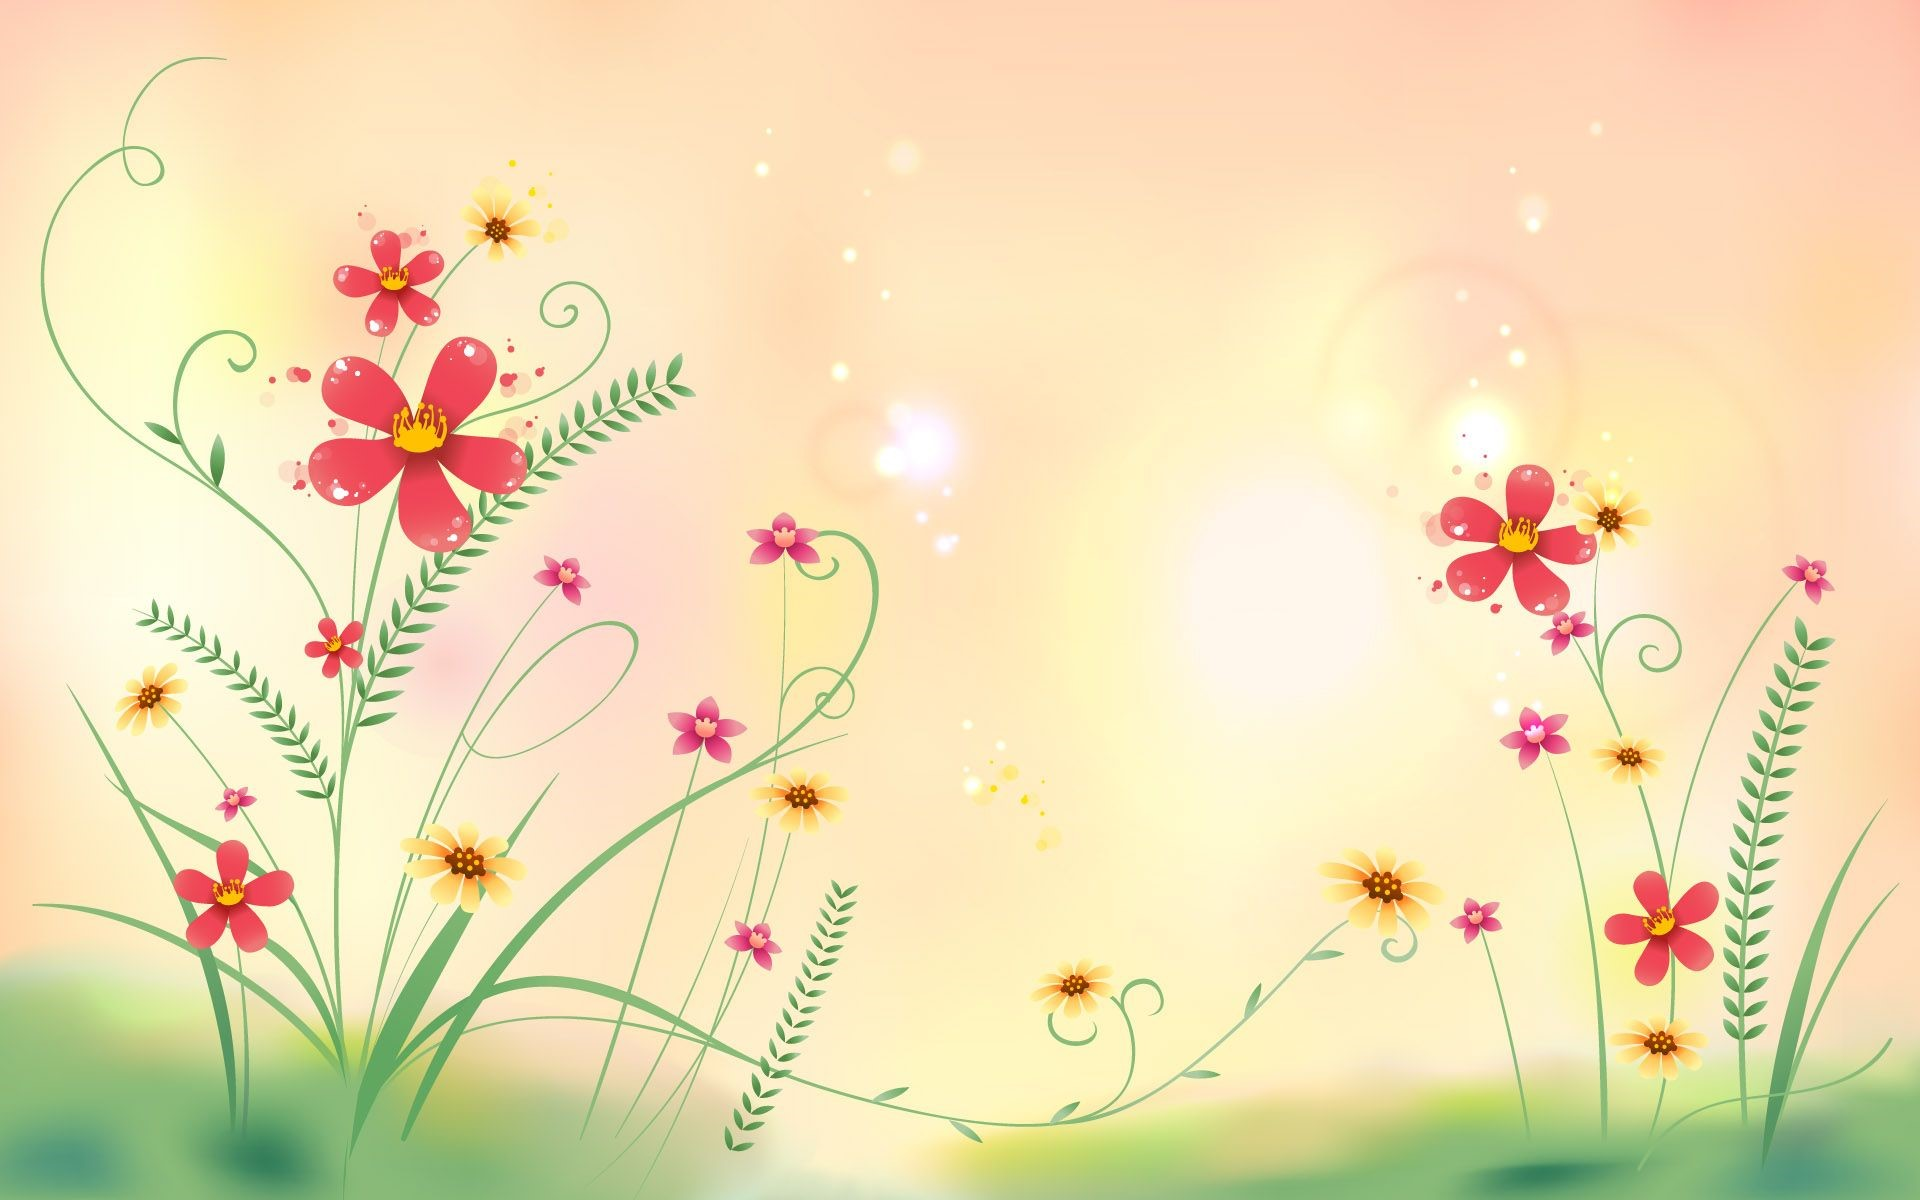 Abstract Floral HD Wallpapers